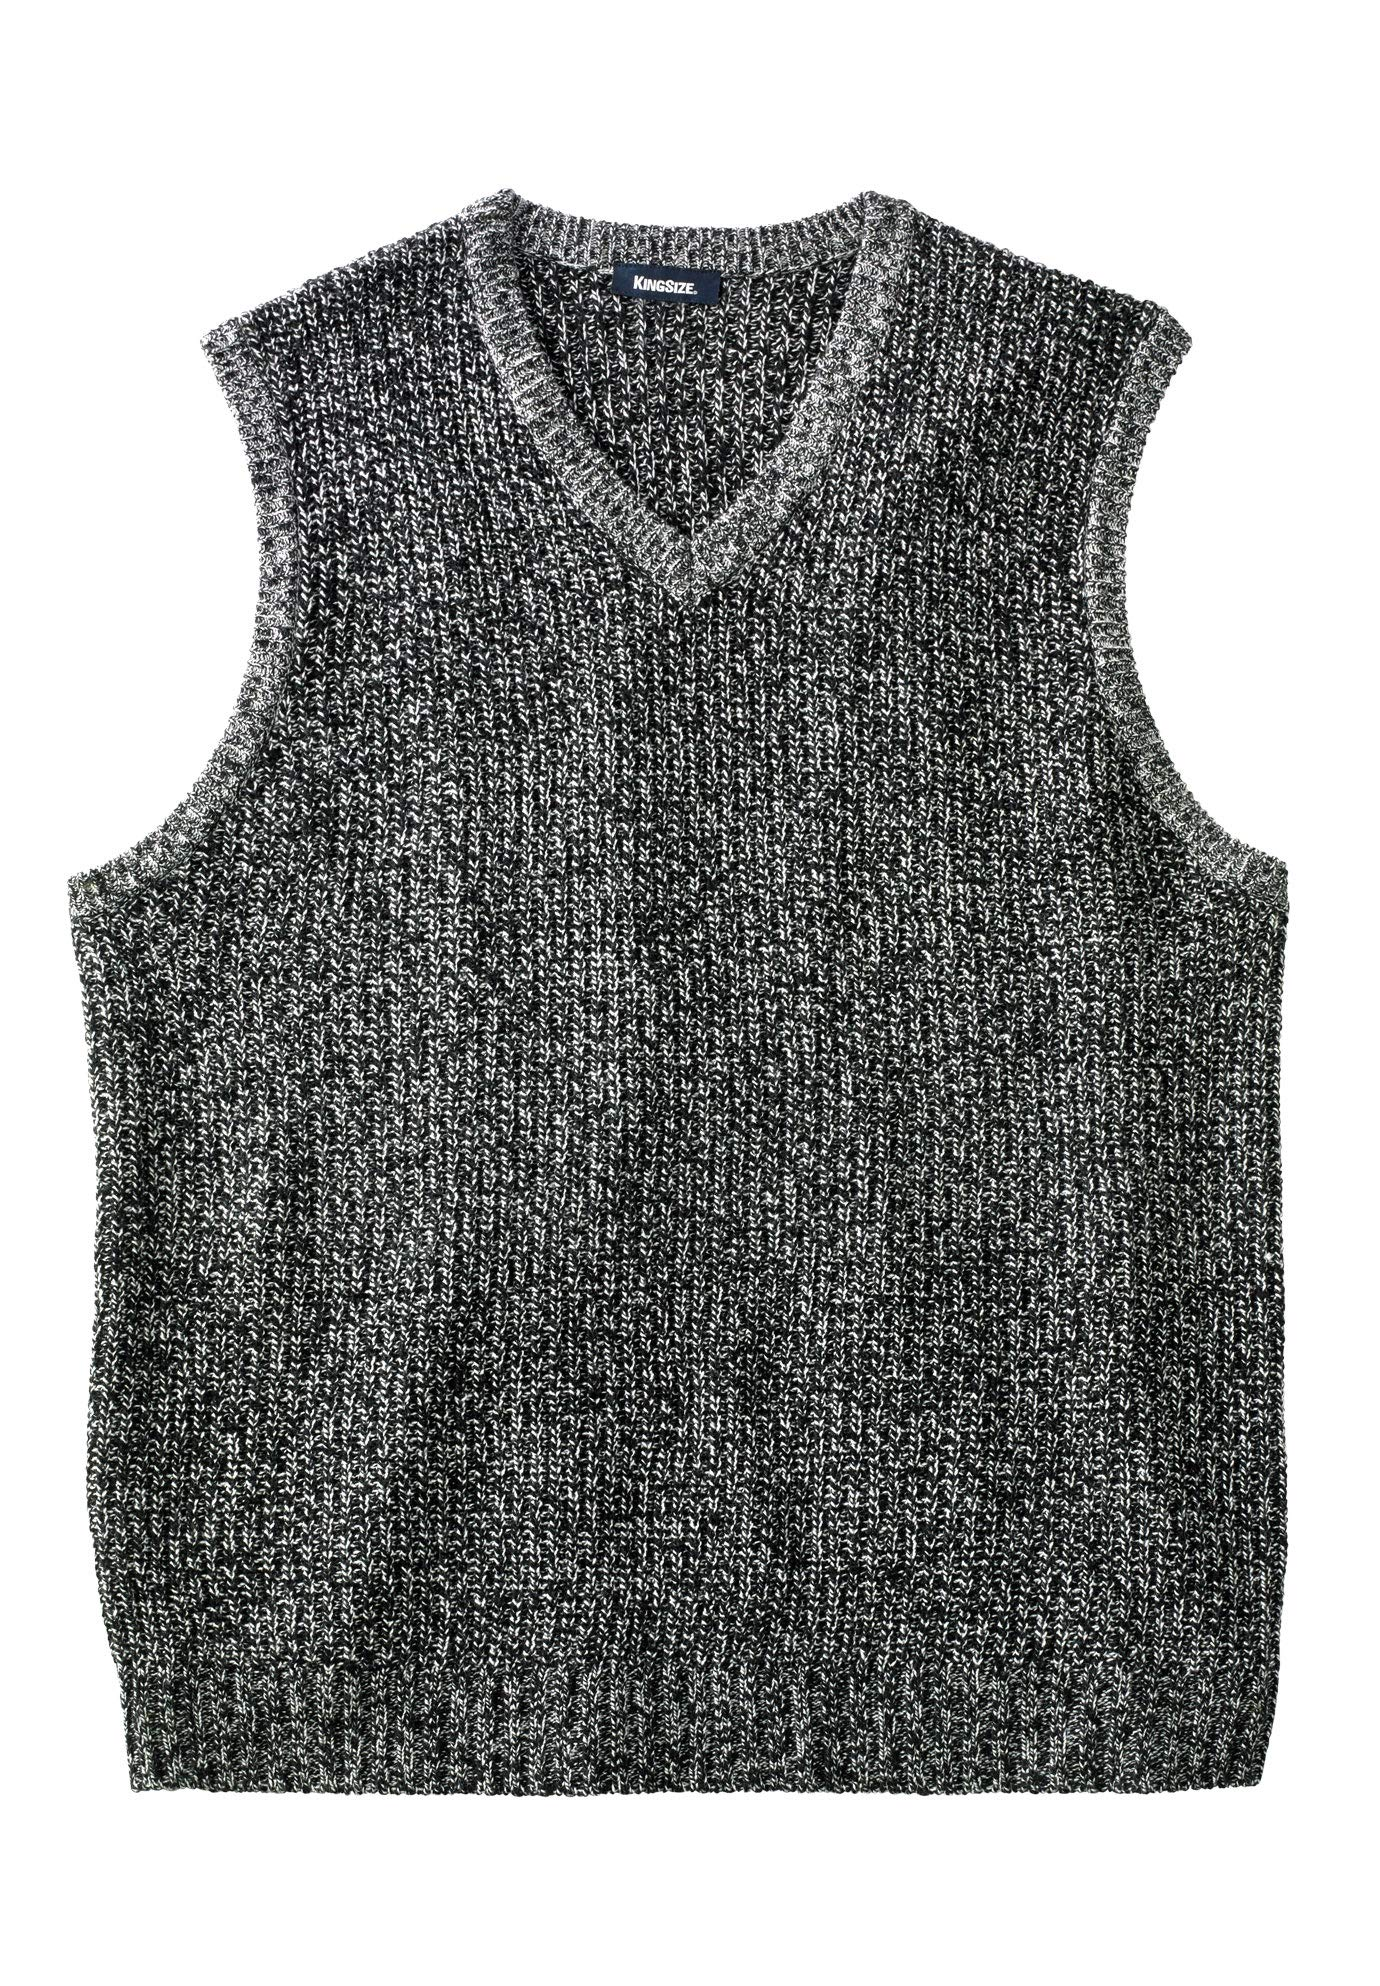 KingSize Men's Big & Tall Shaker Knit V-Neck Sweater Vest, Black Marl Big-2XL by KingSize